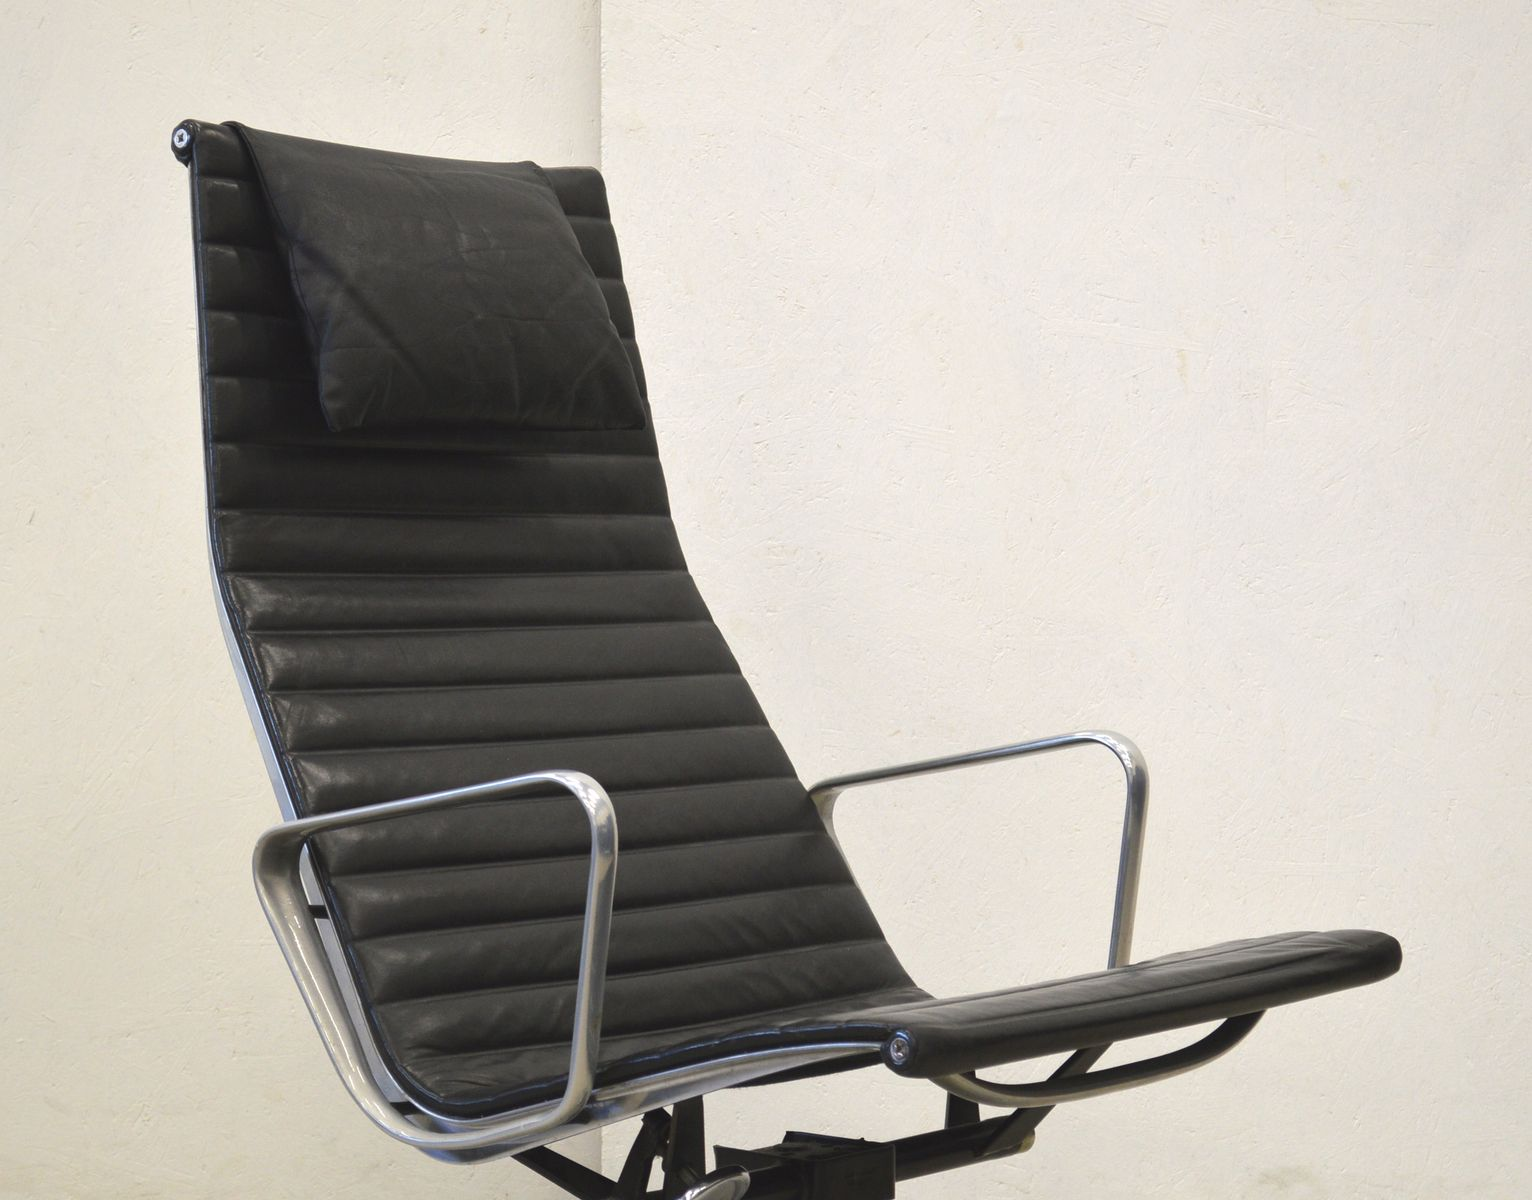 ea124 aluminum lounge chair by charles ray eames for. Black Bedroom Furniture Sets. Home Design Ideas